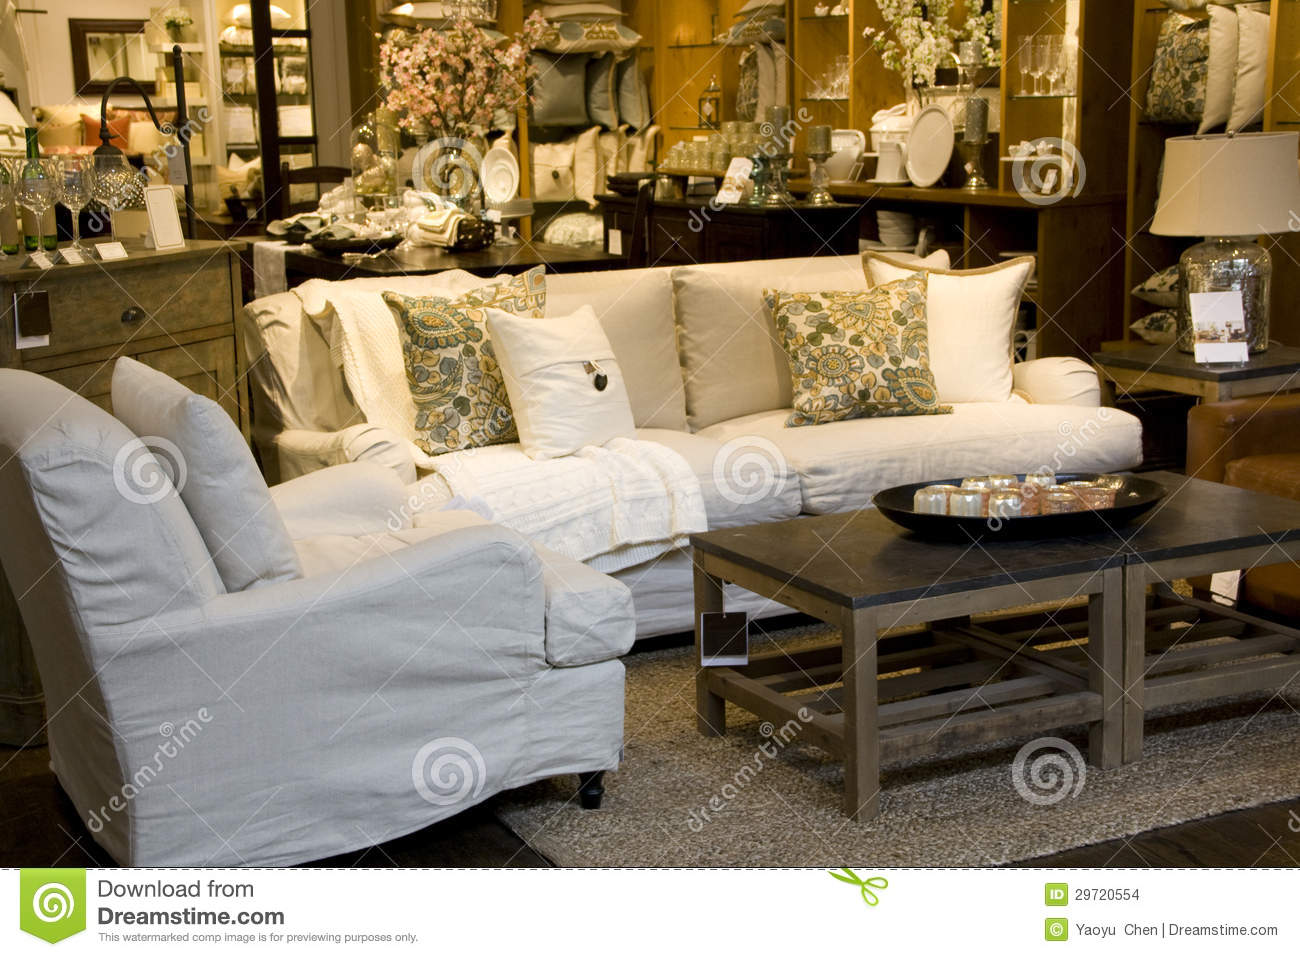 Furniture and home decor store stock images image 29720554 for Home decor furniture stores